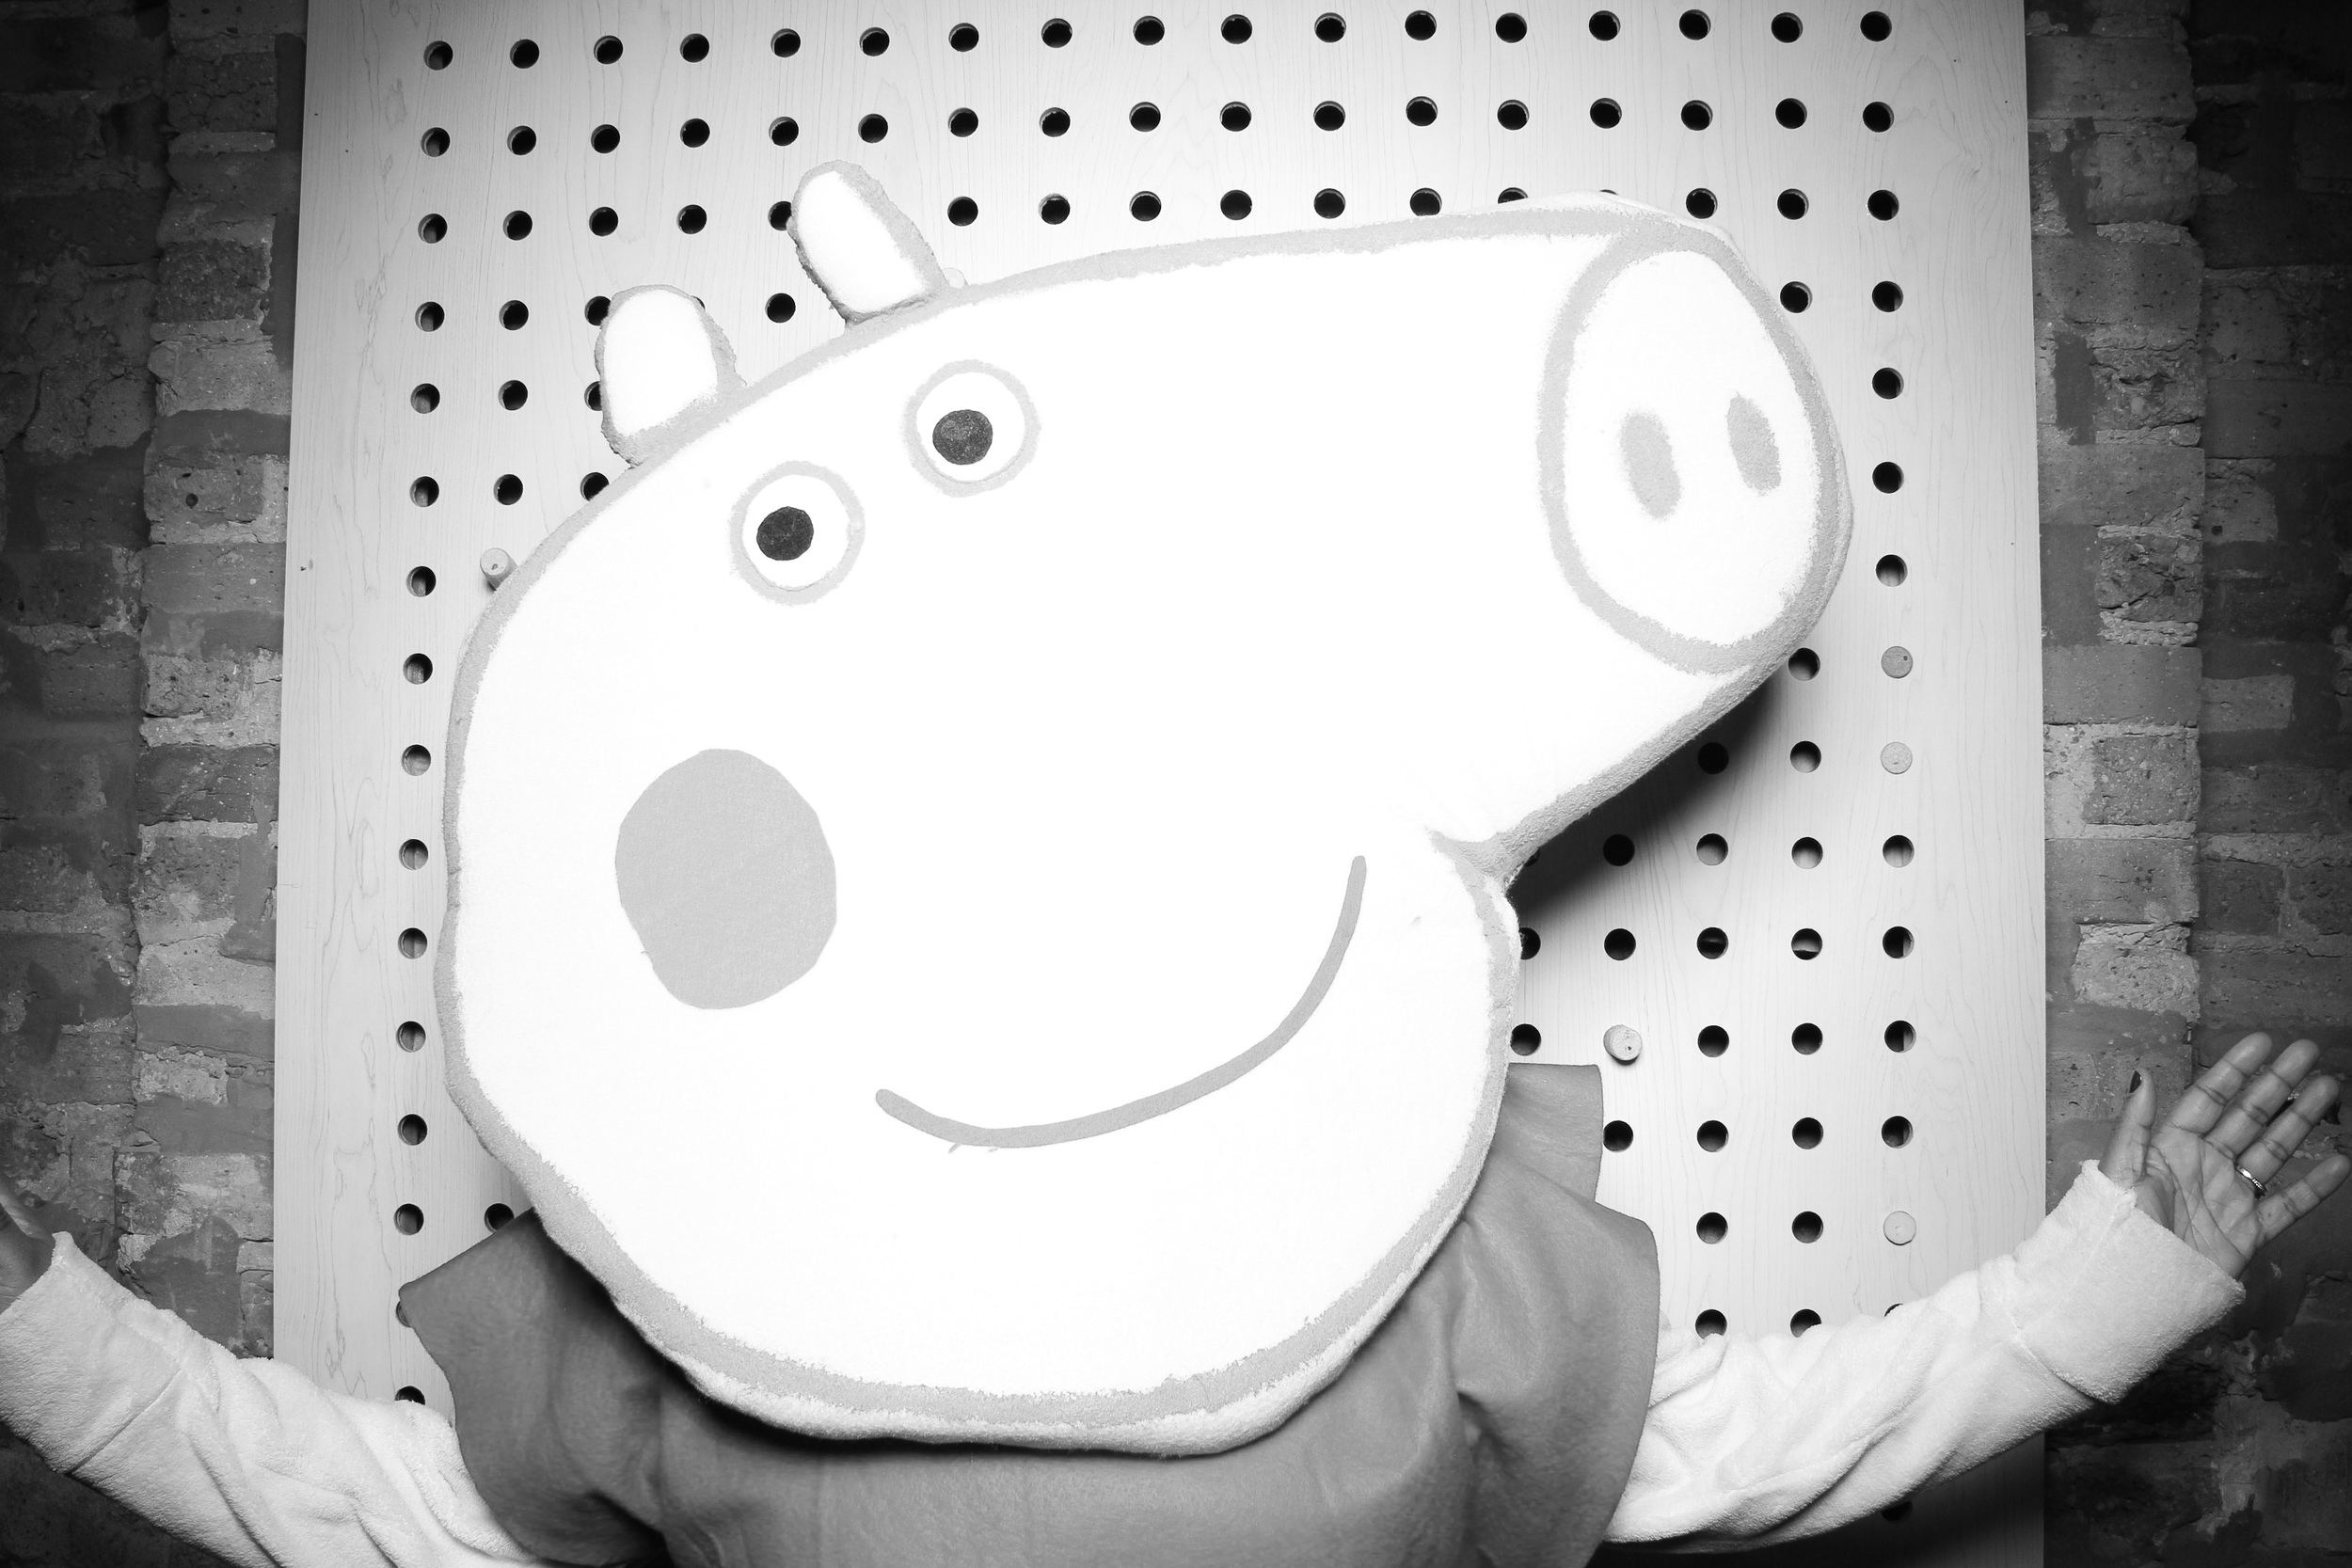 Peppa Pig posing for a Fotio photo booth pic at Sod Room Chicago!